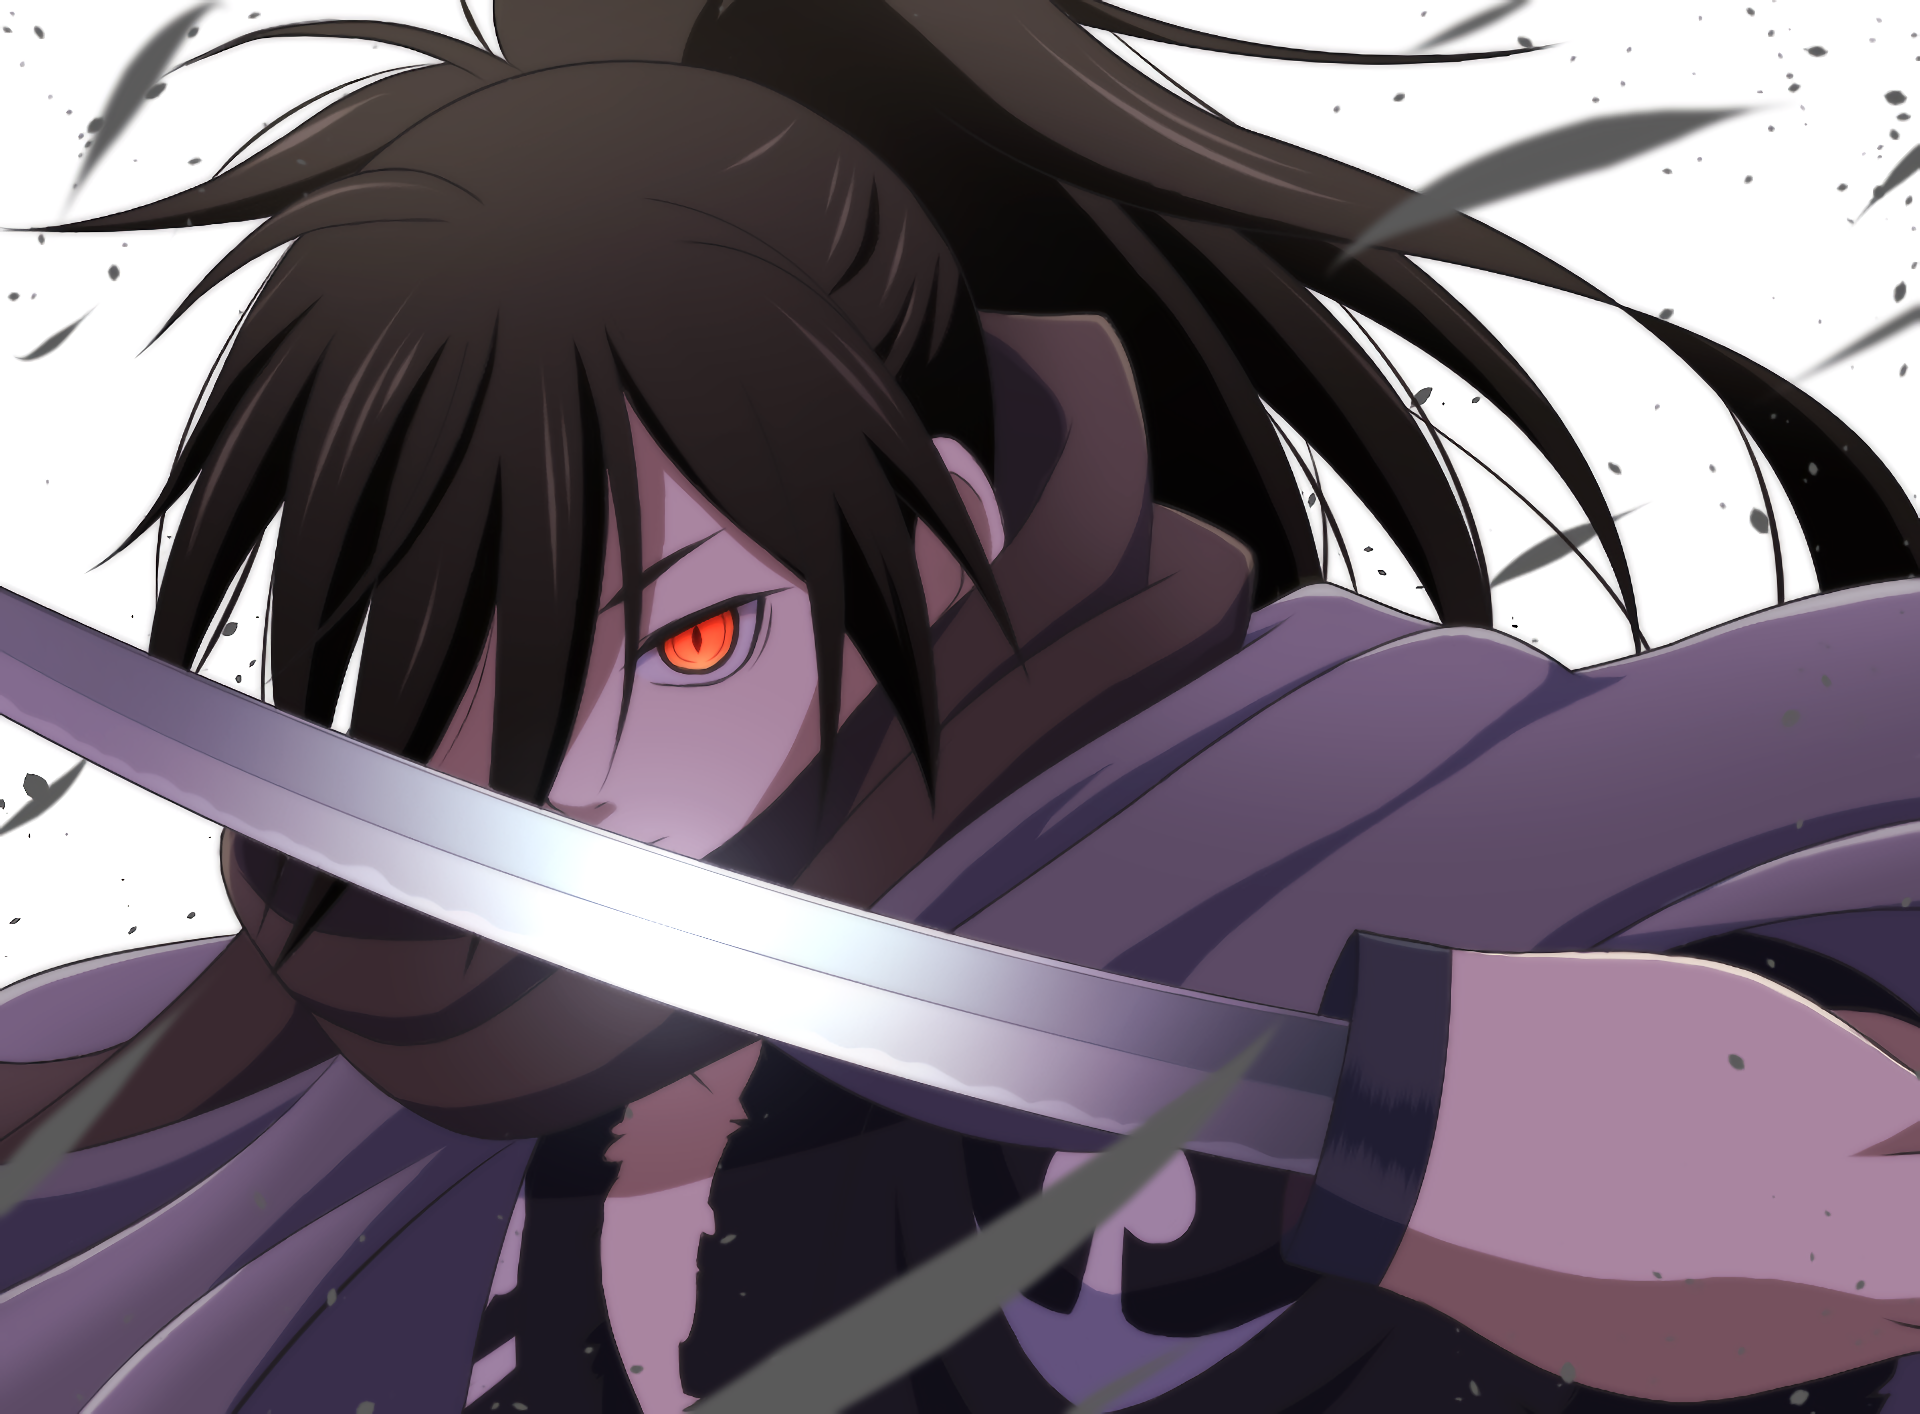 Dororo (Anime Series) HD Images Anime, anime